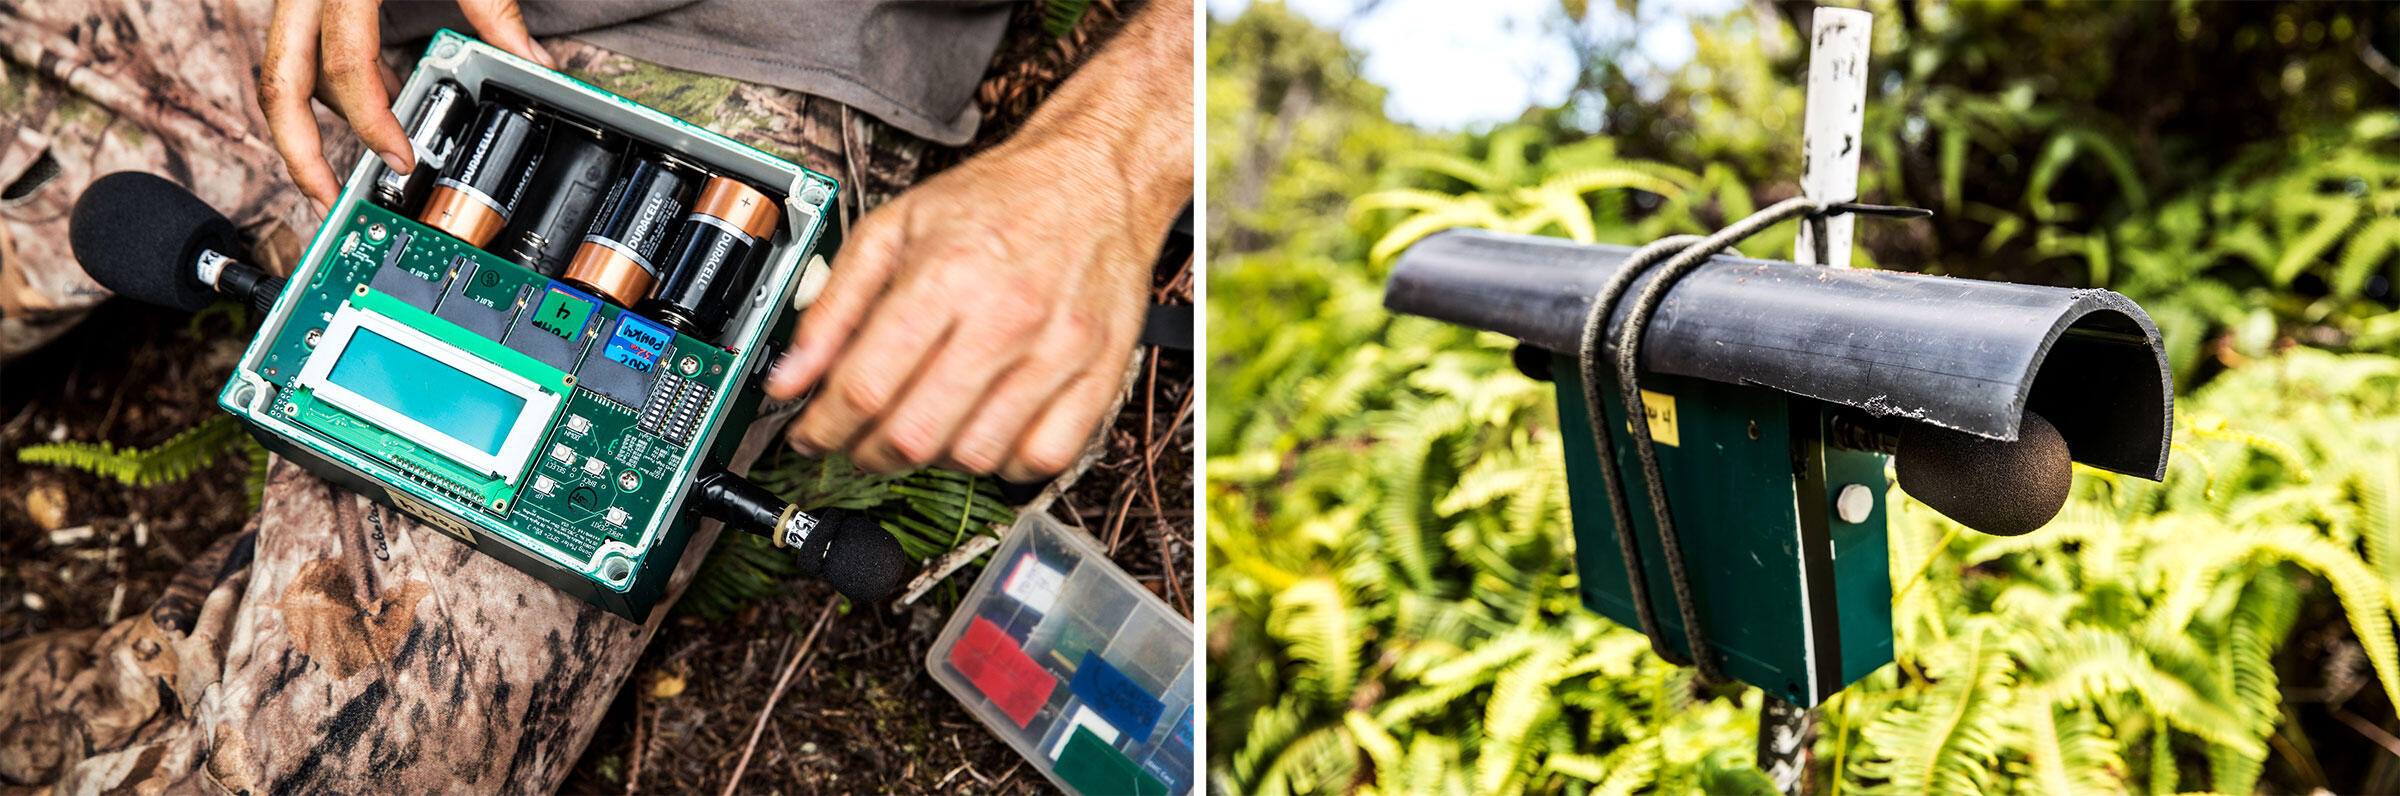 Scientists use acoustic monitoring devices to detect seabirds in the dense forest of Kauai. Photos: Tom Fowlks